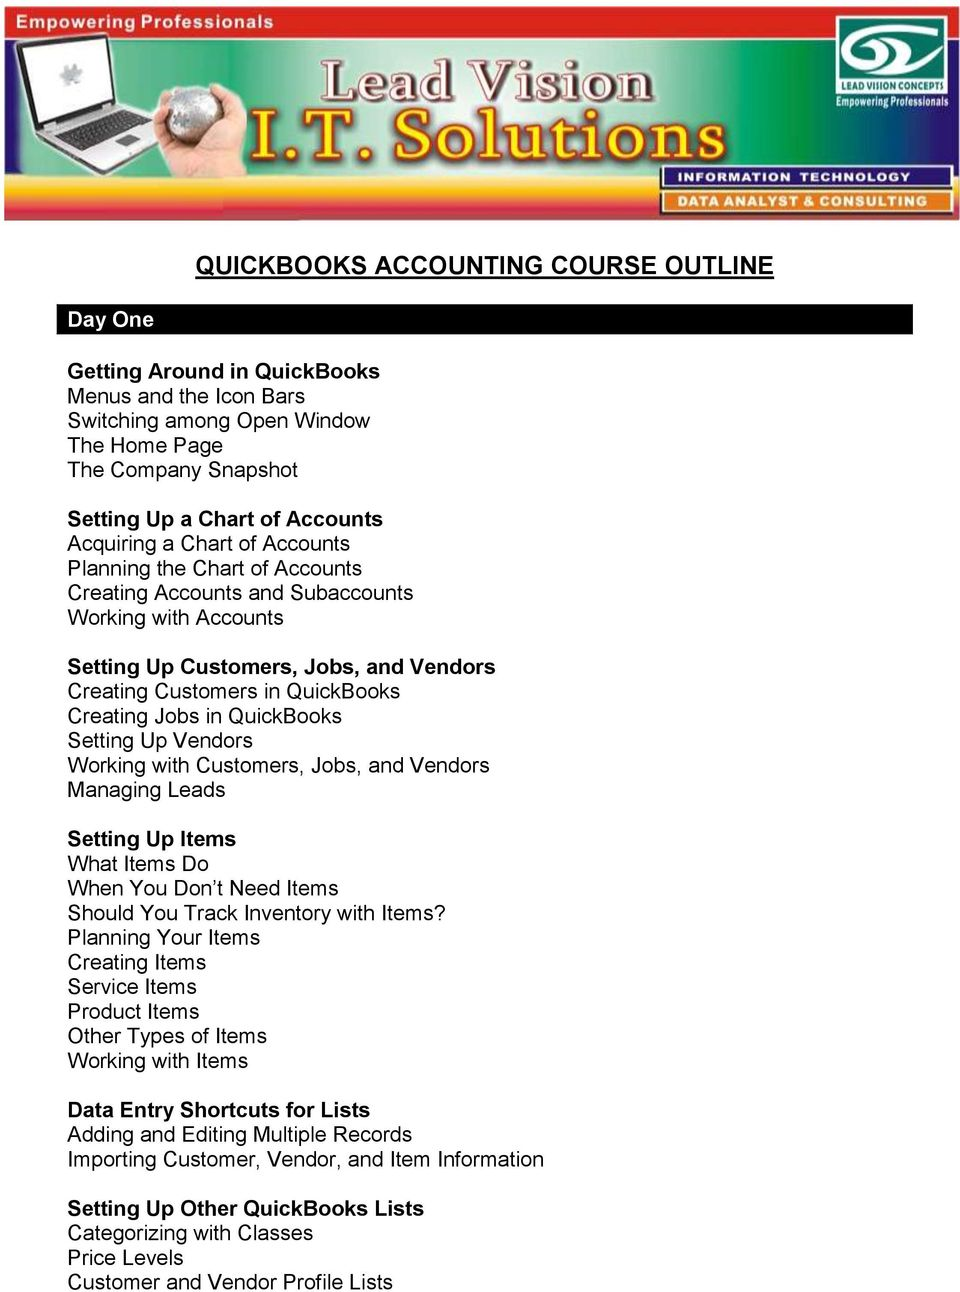 Jobs in QuickBooks Setting Up Vendors Working with Customers, Jobs, and Vendors Managing Leads Setting Up Items What Items Do When You Don t Need Items Should You Track Inventory with Items?